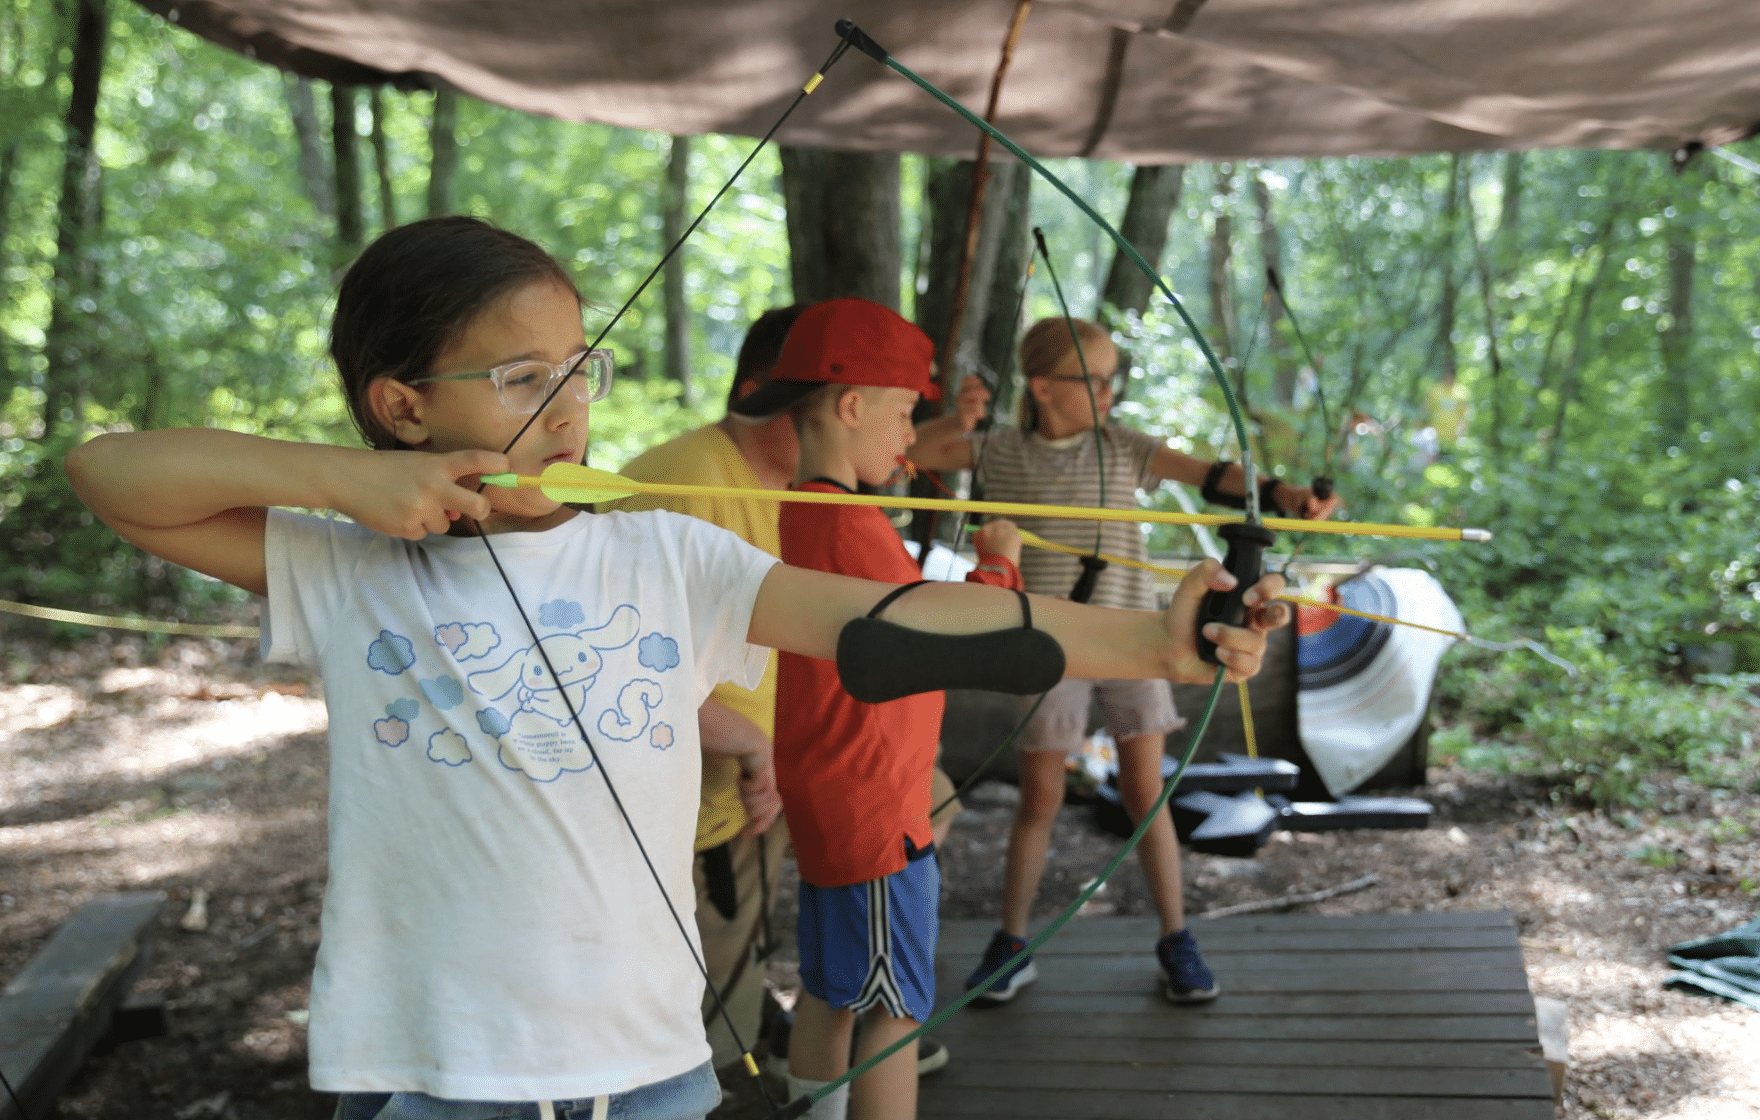 campers participating in archery